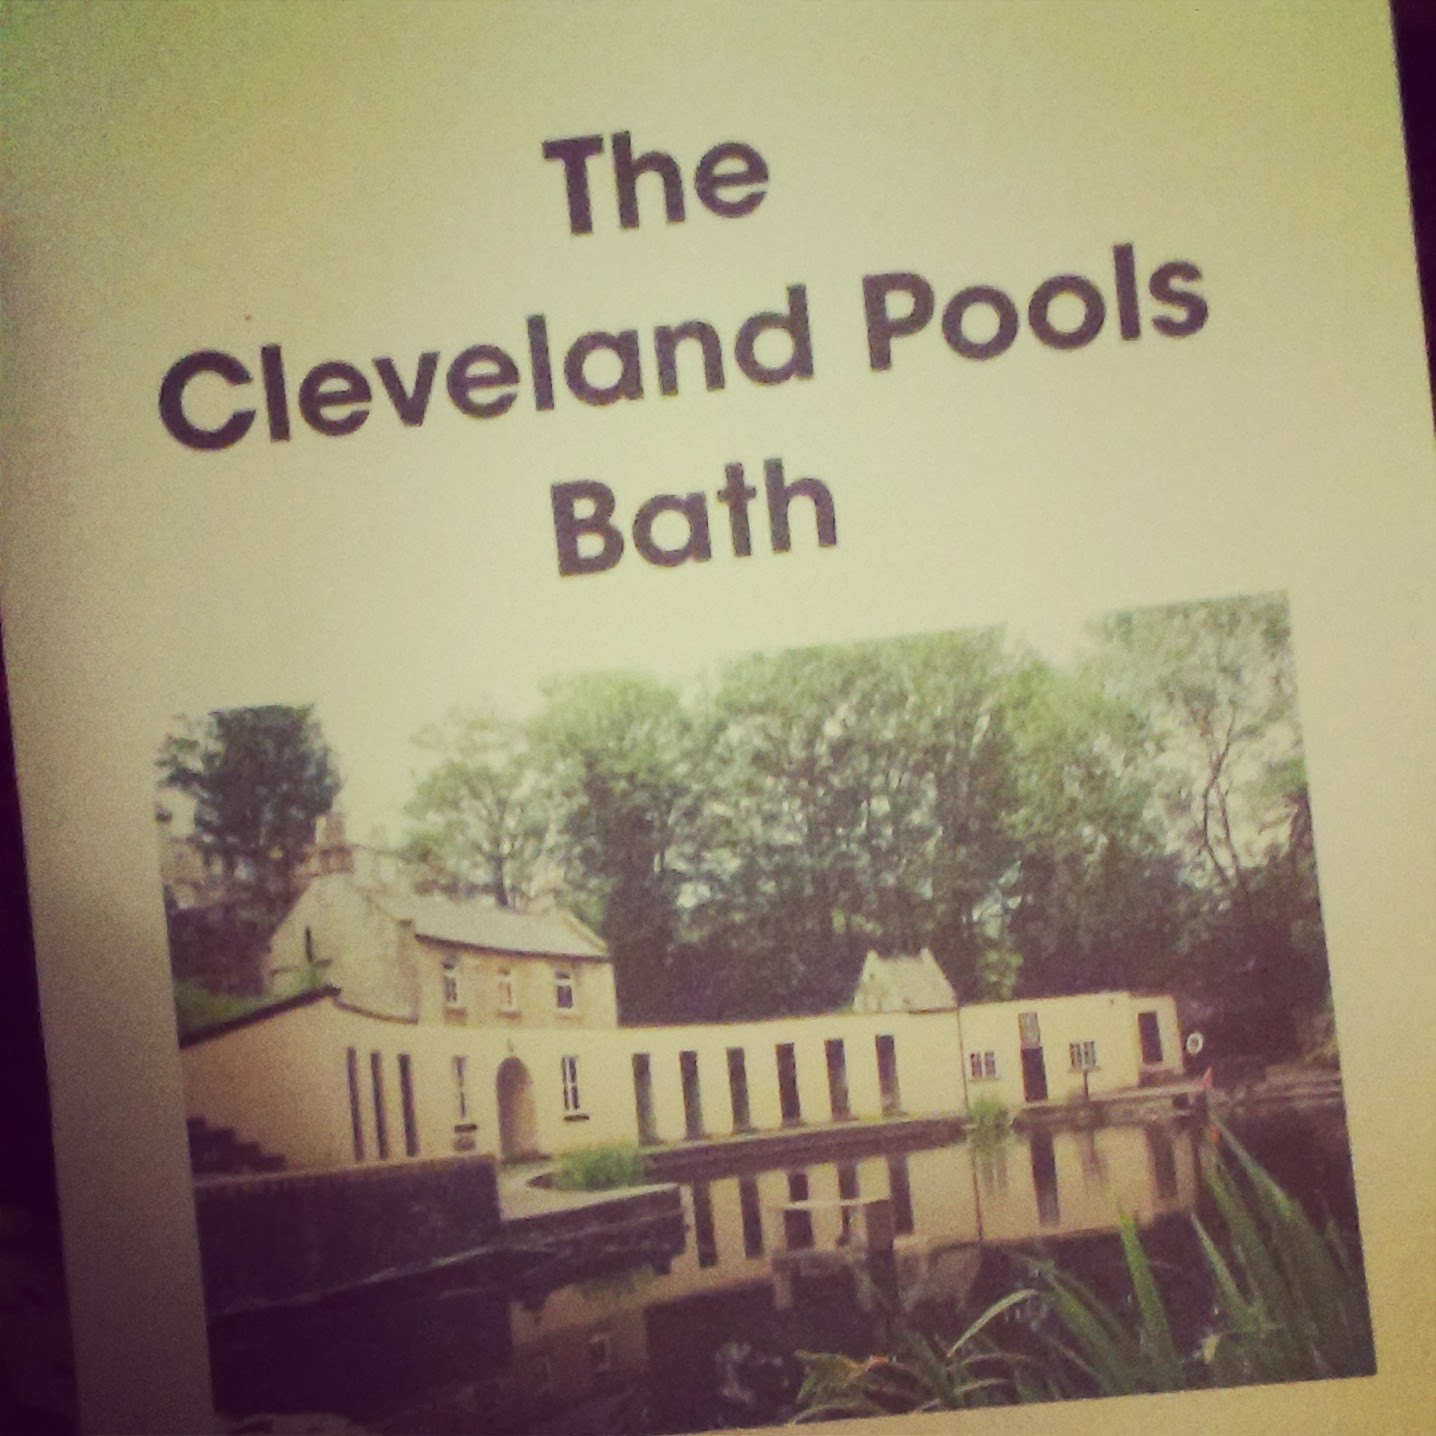 Cleveland Pools Leaflet